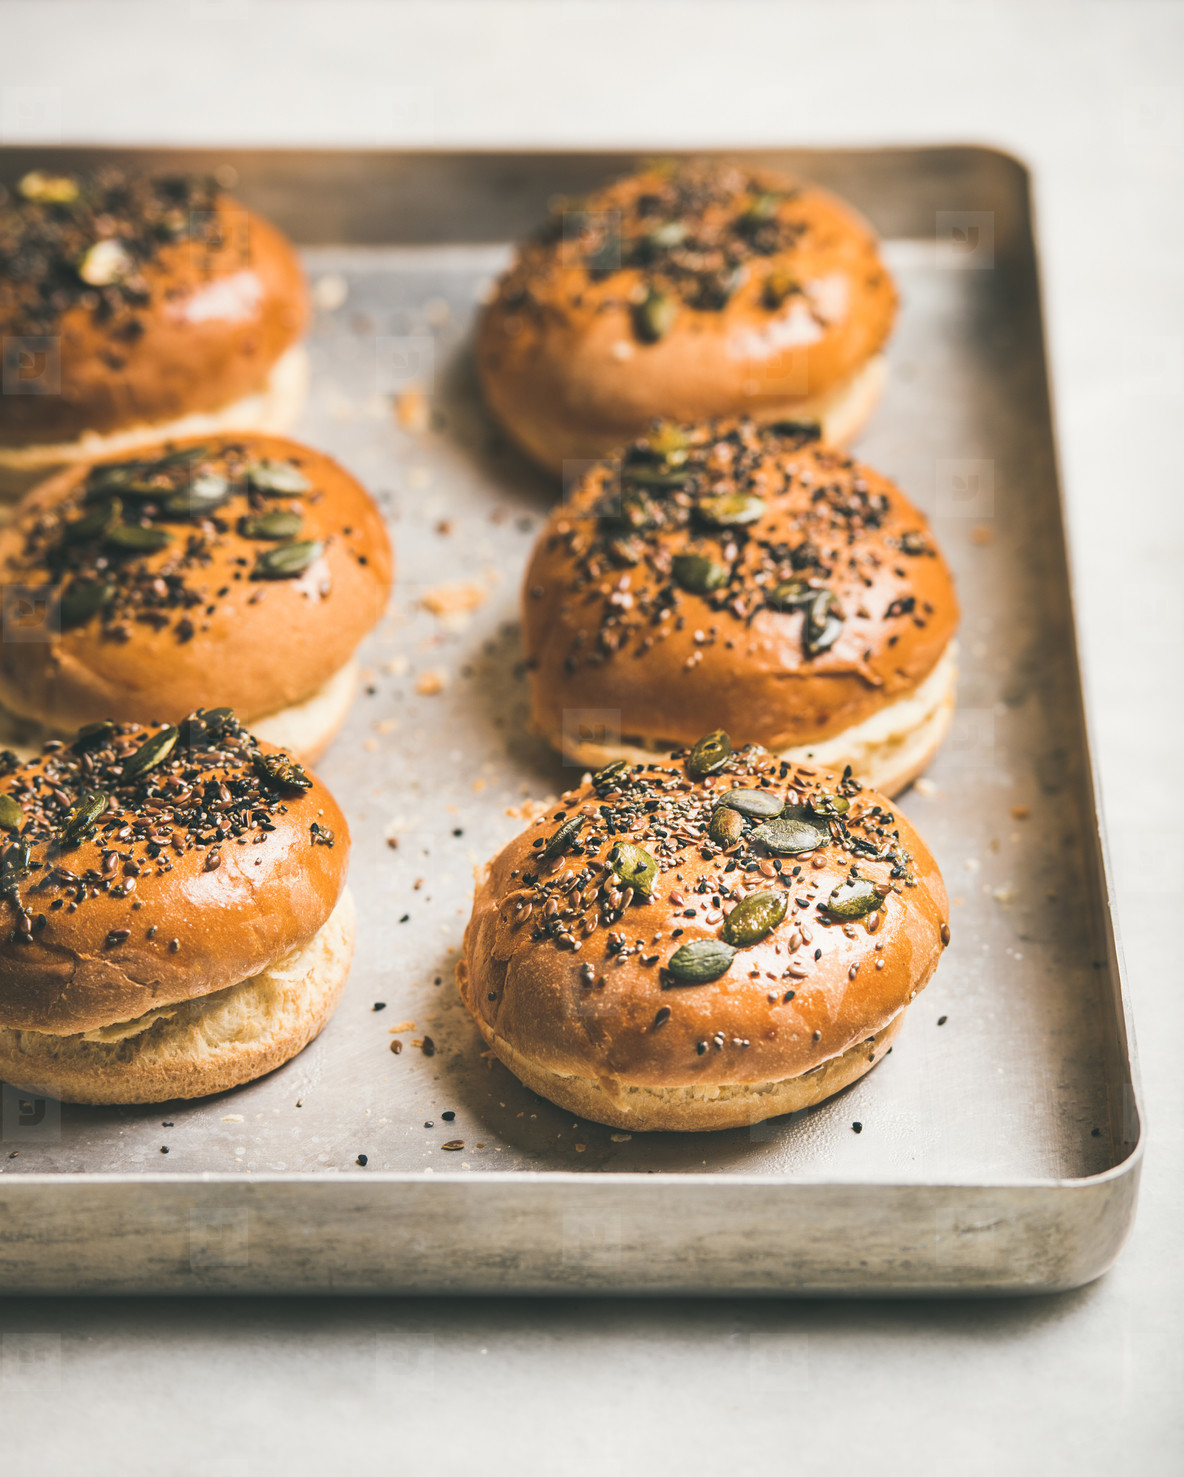 Freshly baked homemade buns with seeds for cooking burgers